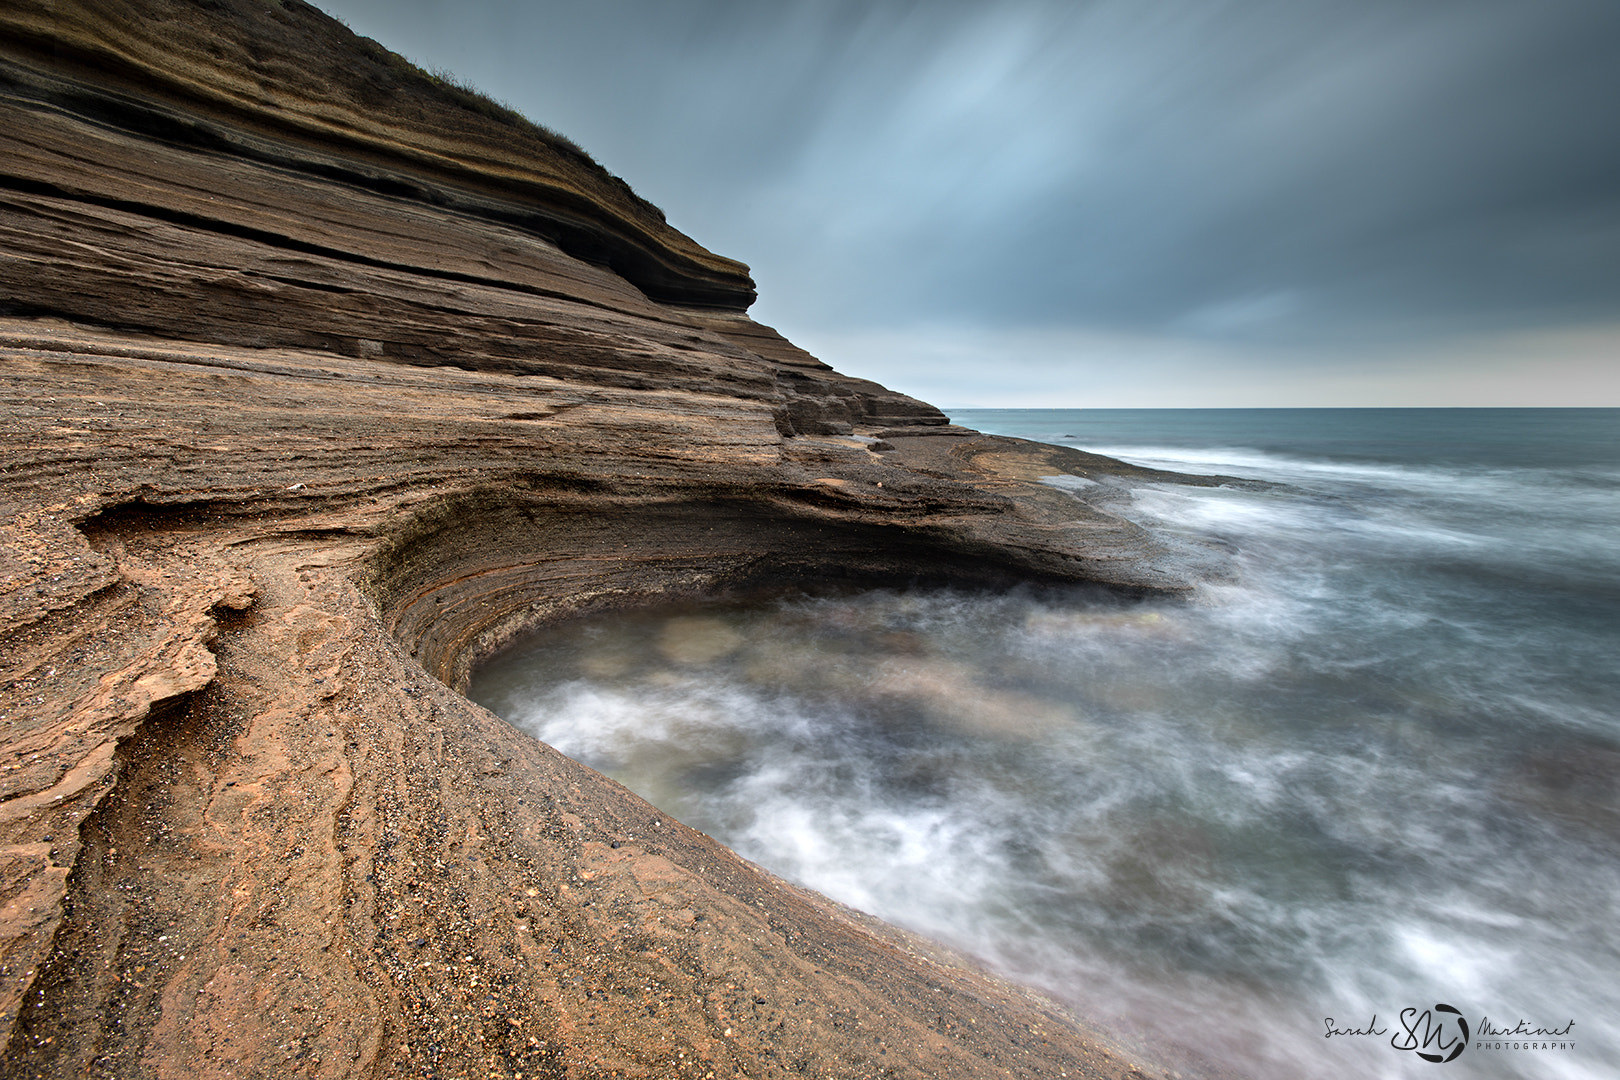 Photograph Curve by Sarah Martinet on 500px